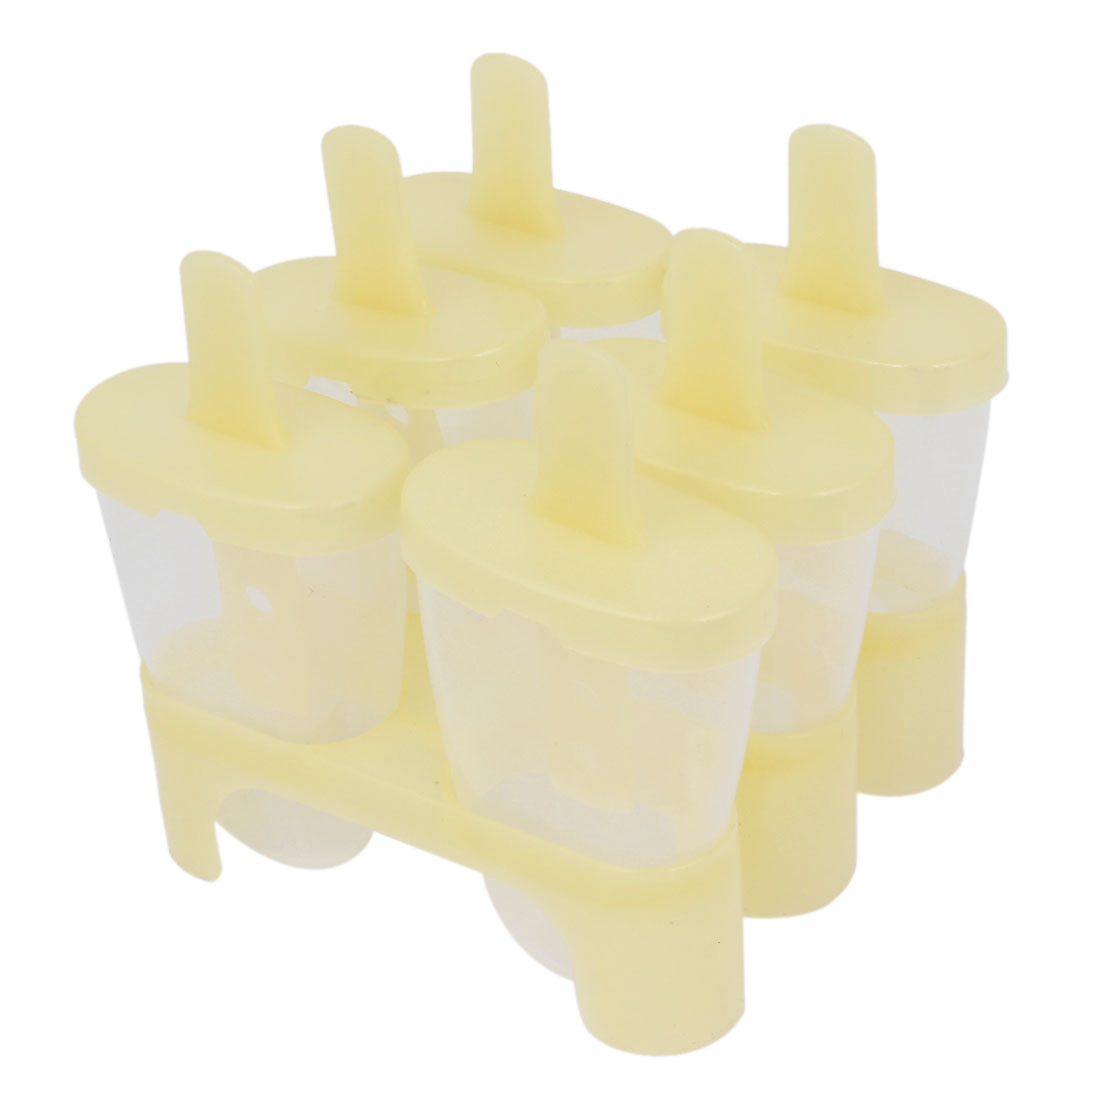 Home Plastic DIY Ice Candy Bar Mold Frozen Juice Frame Tray Sherbet Maker Yellow 6 Pcs